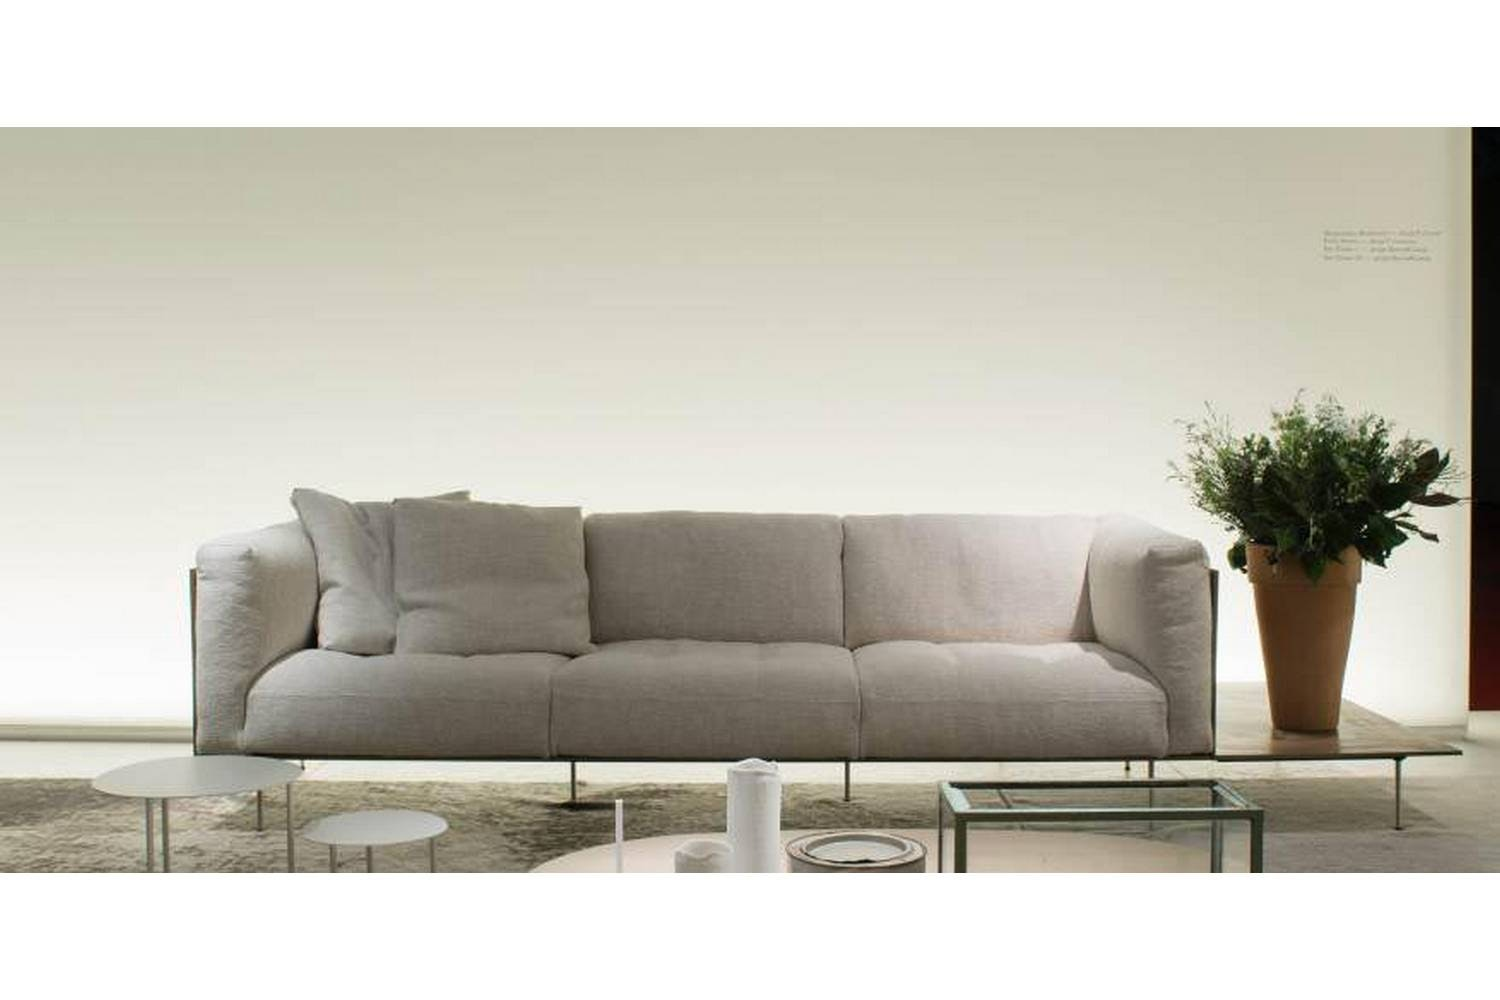 Rodwood Sofa by Piero Lissoni for Living Divani